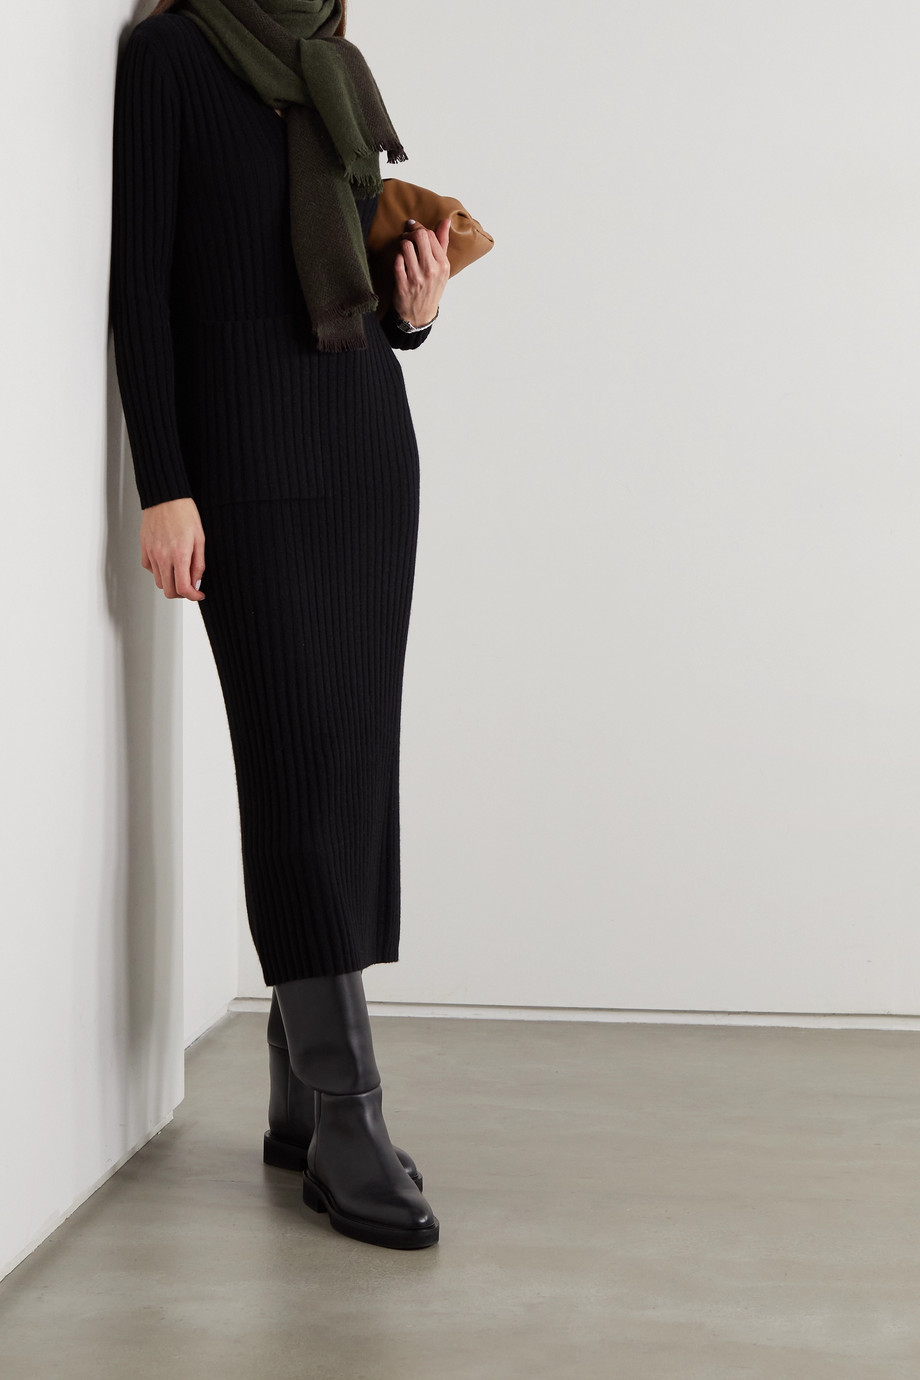 Lisa Yang Willow ribbed cashmere midi dress